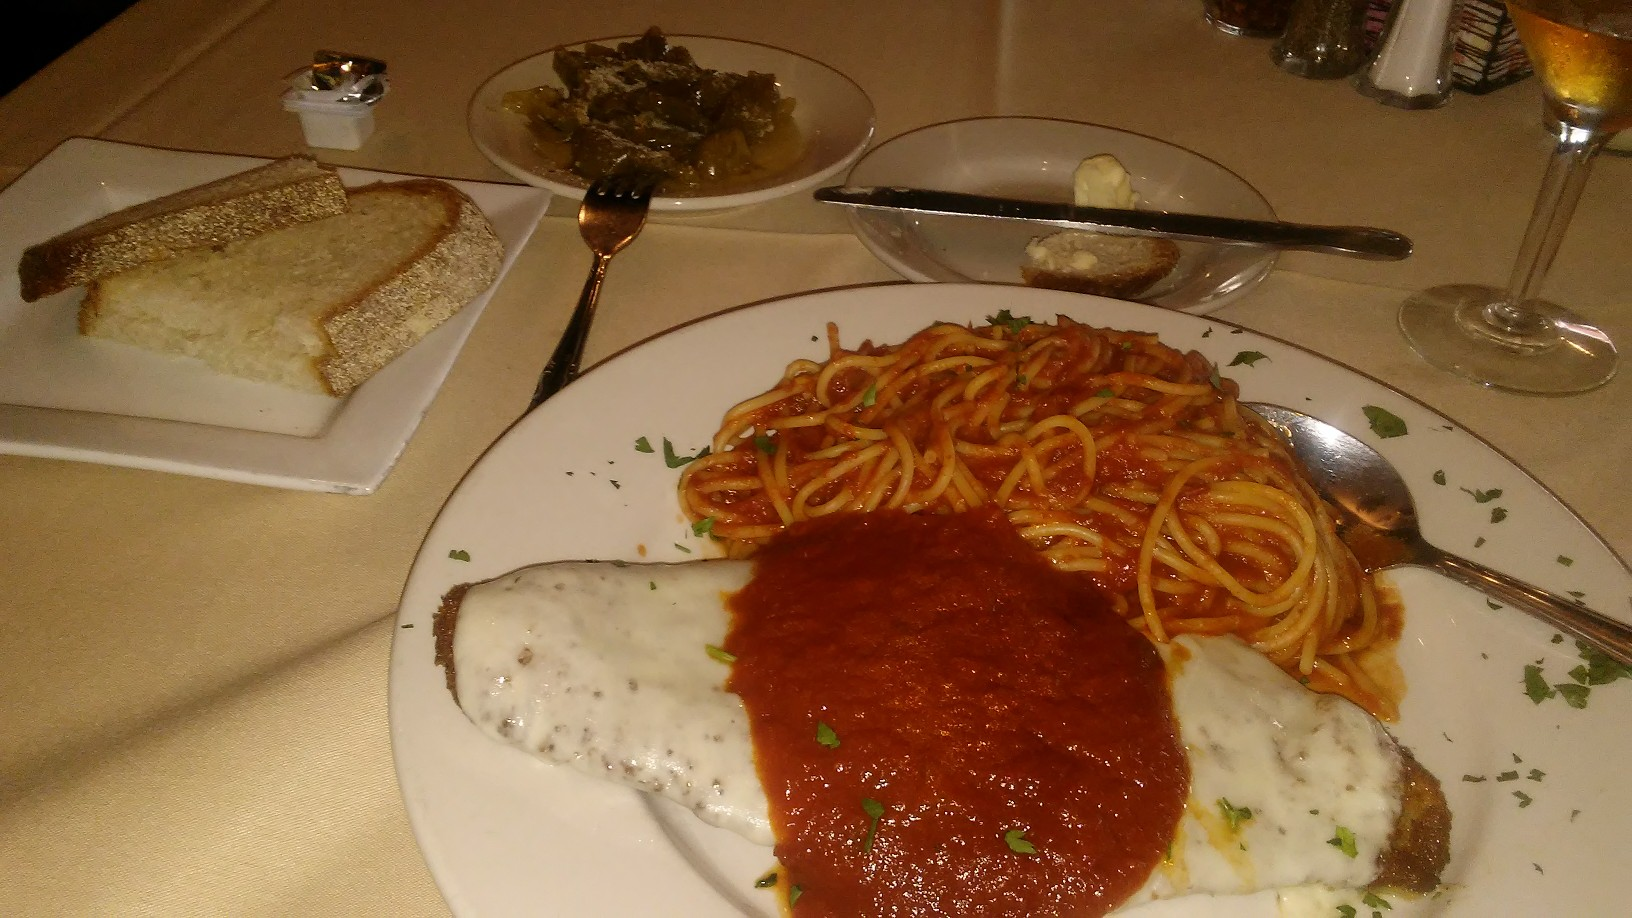 Peppers Italian Restaurant Bar 175 Town Center Rd King Of Prussia Pa 19406 Yp